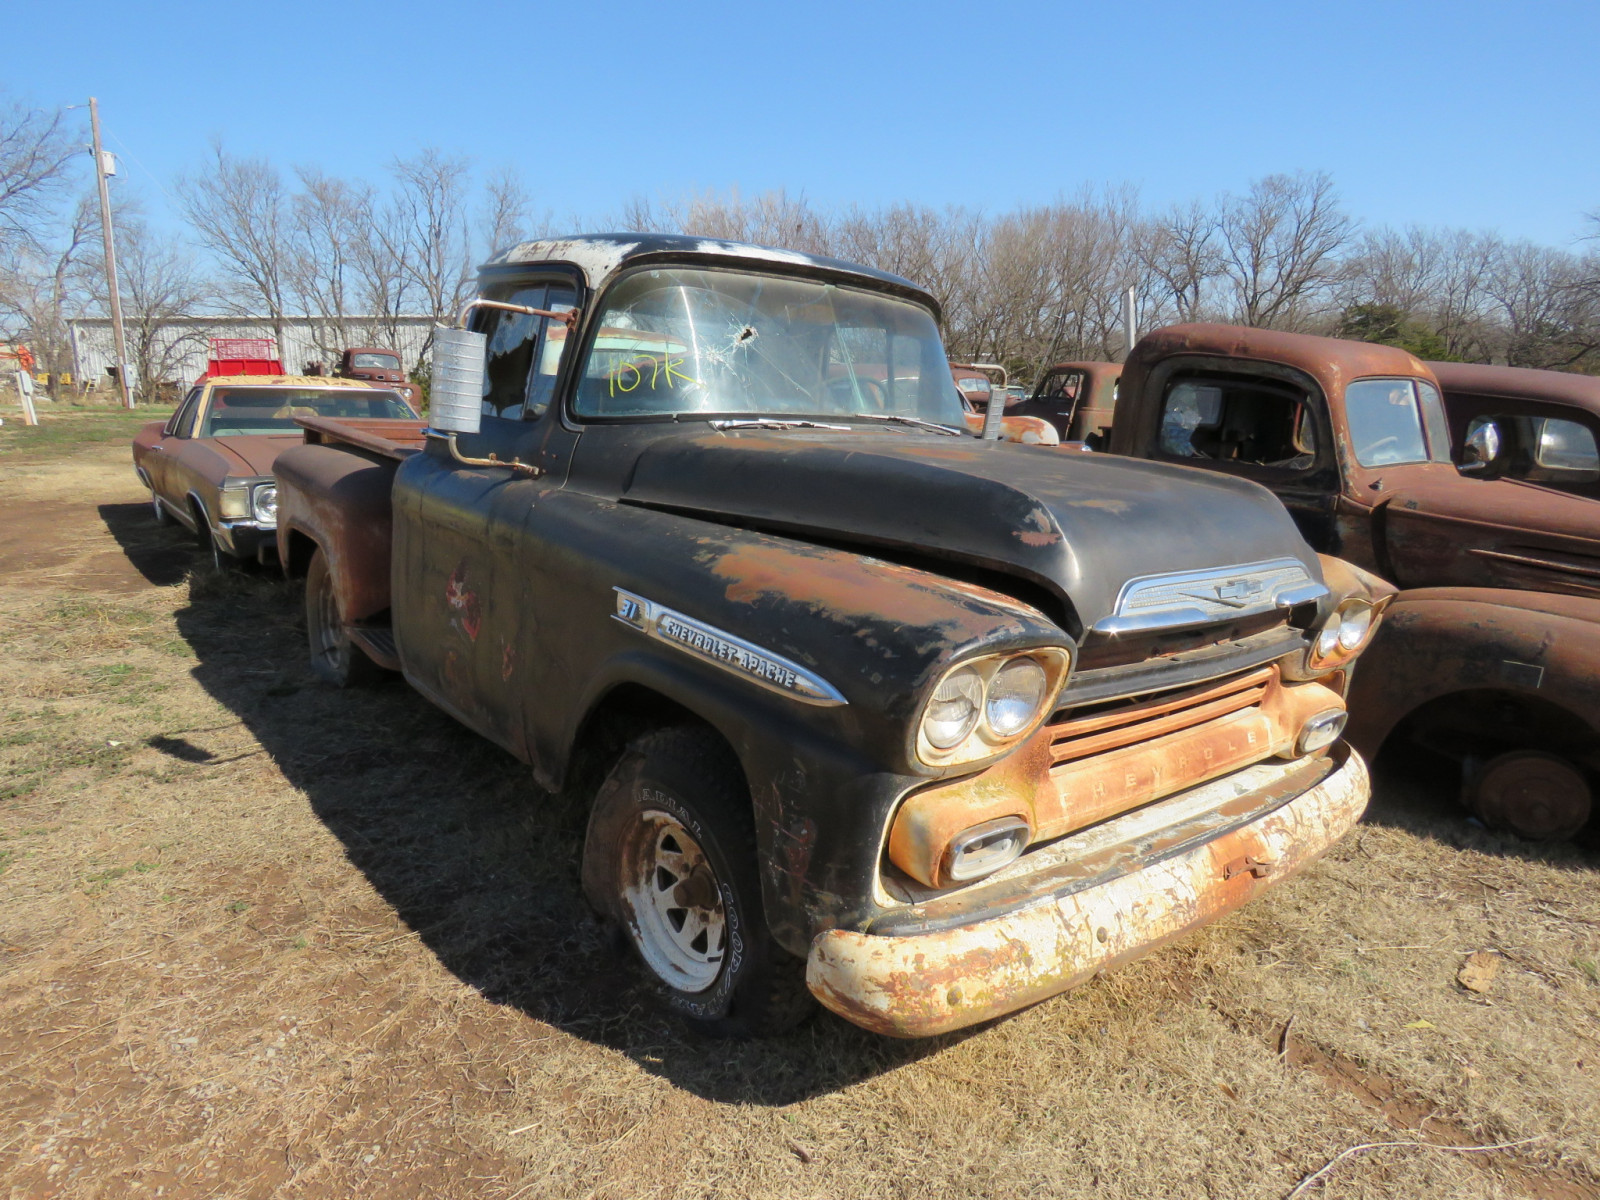 1959 Chevrolet 3100 Series Stepside Pickup - Image 1